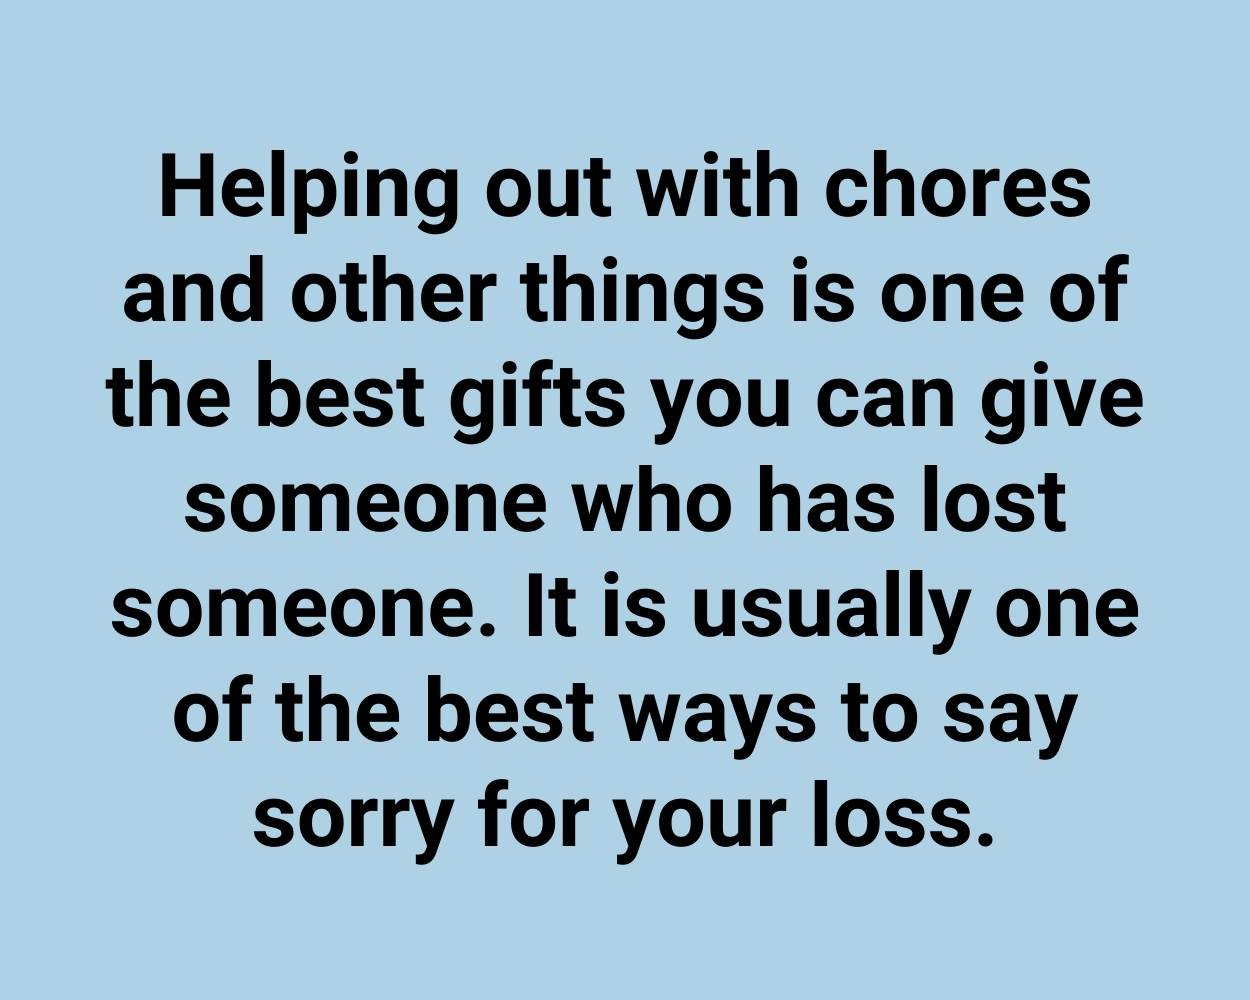 Helping out with chores and other things is one of the best gifts you can give someone who has lost someone. It is usually one of the best ways to say sorry for your loss.